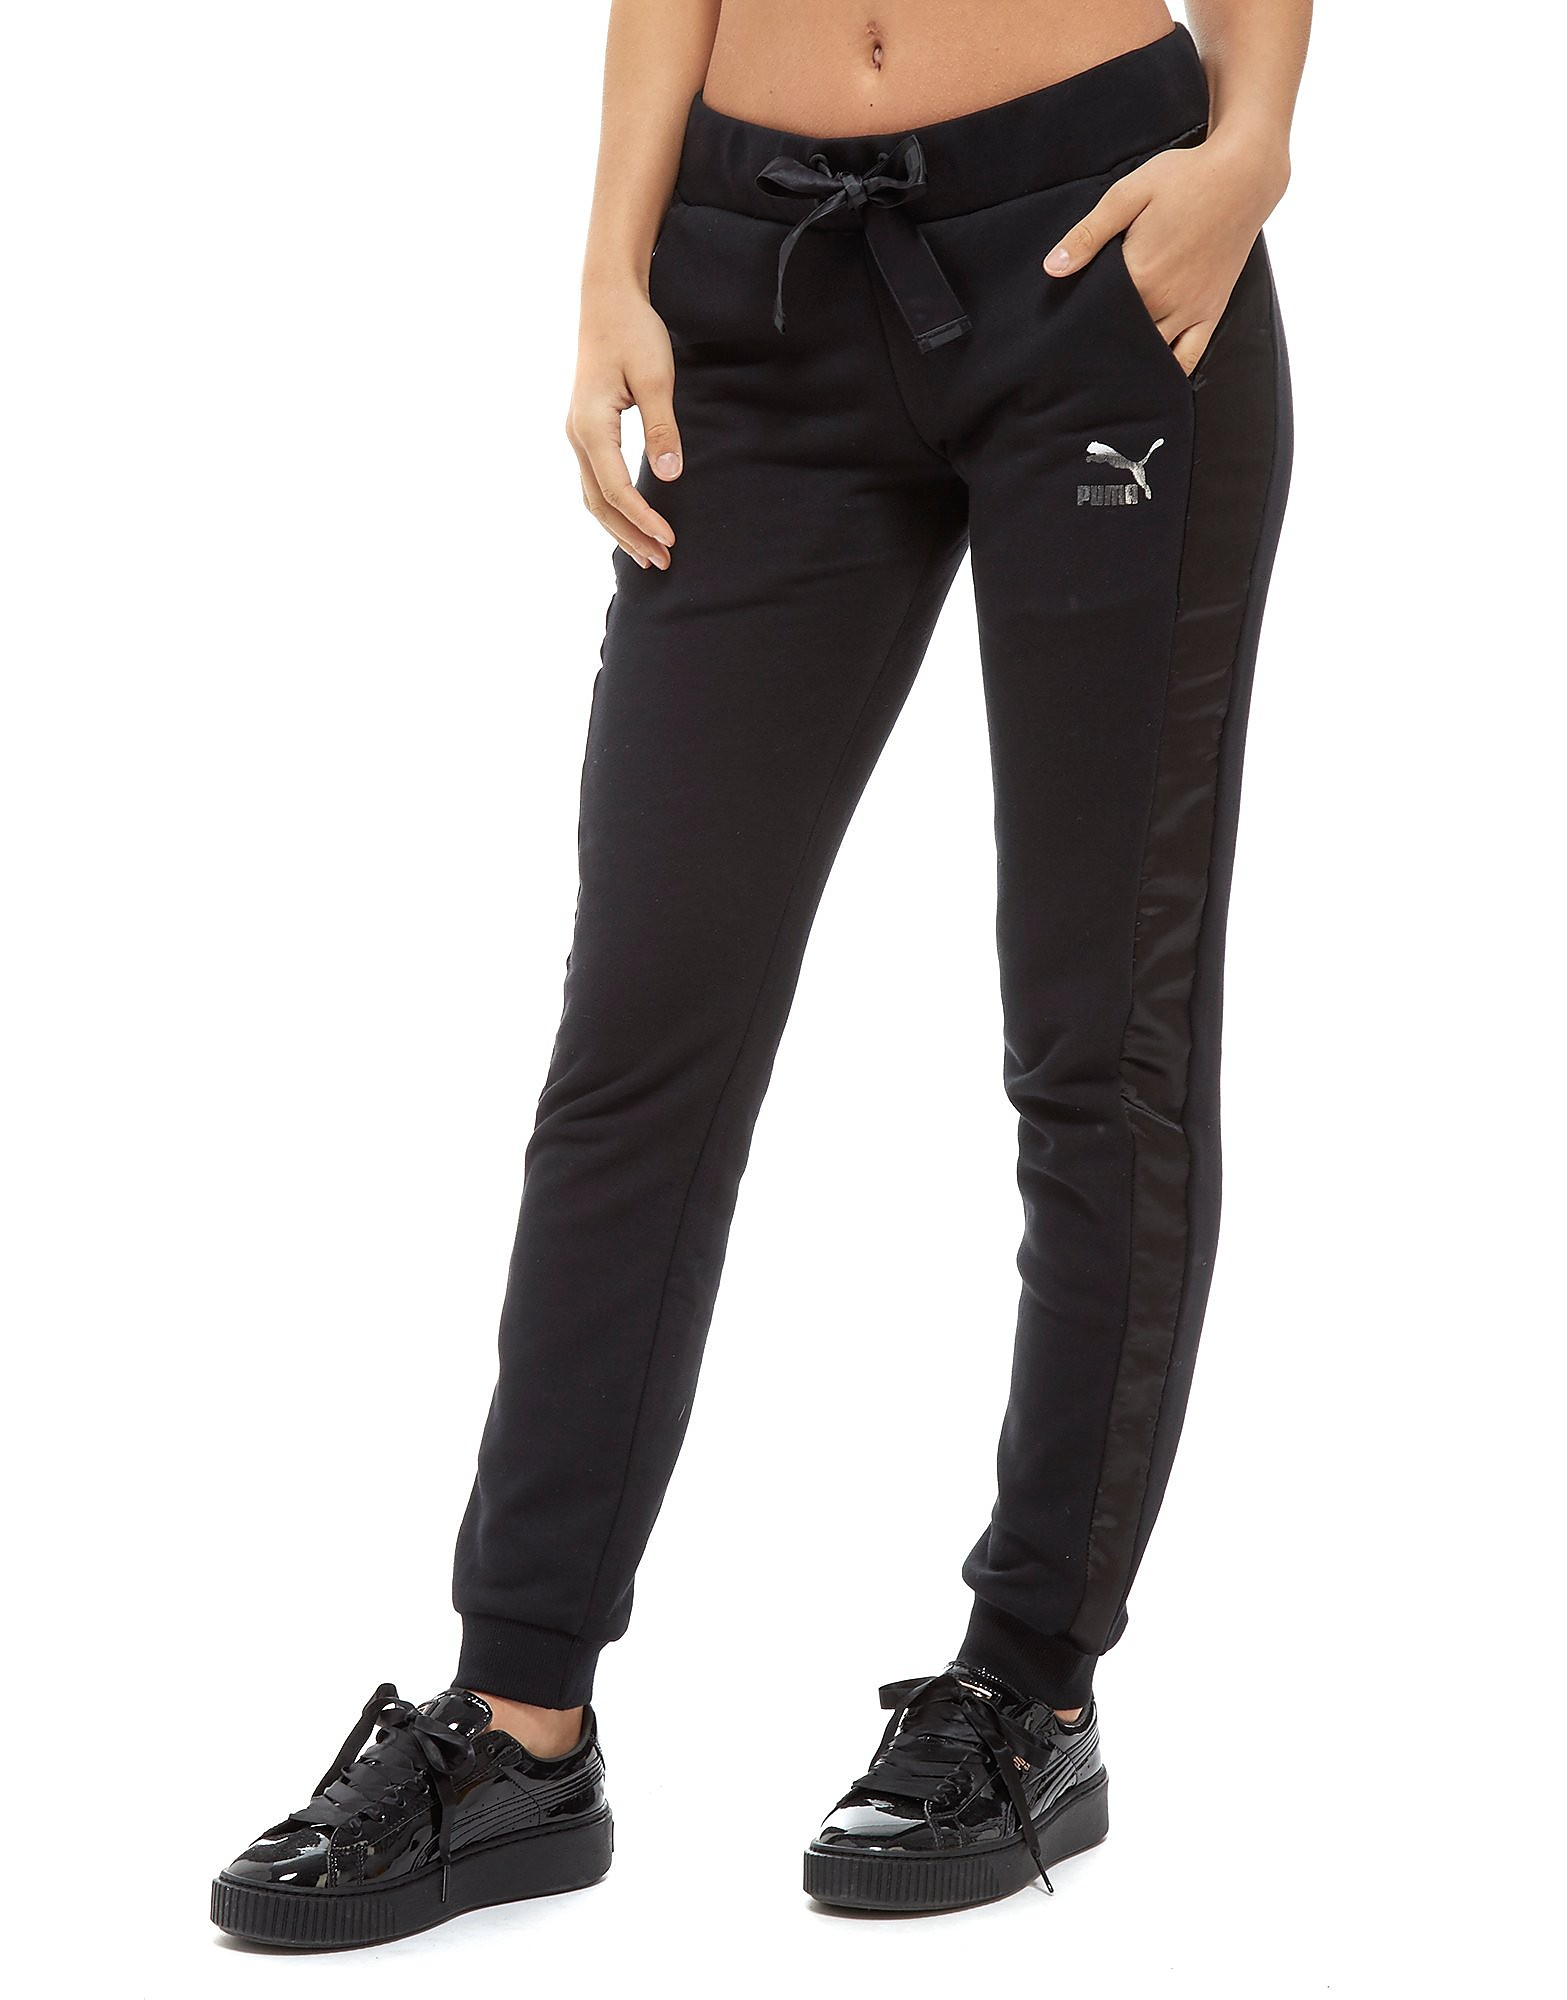 PUMA Bow Fleece Pants